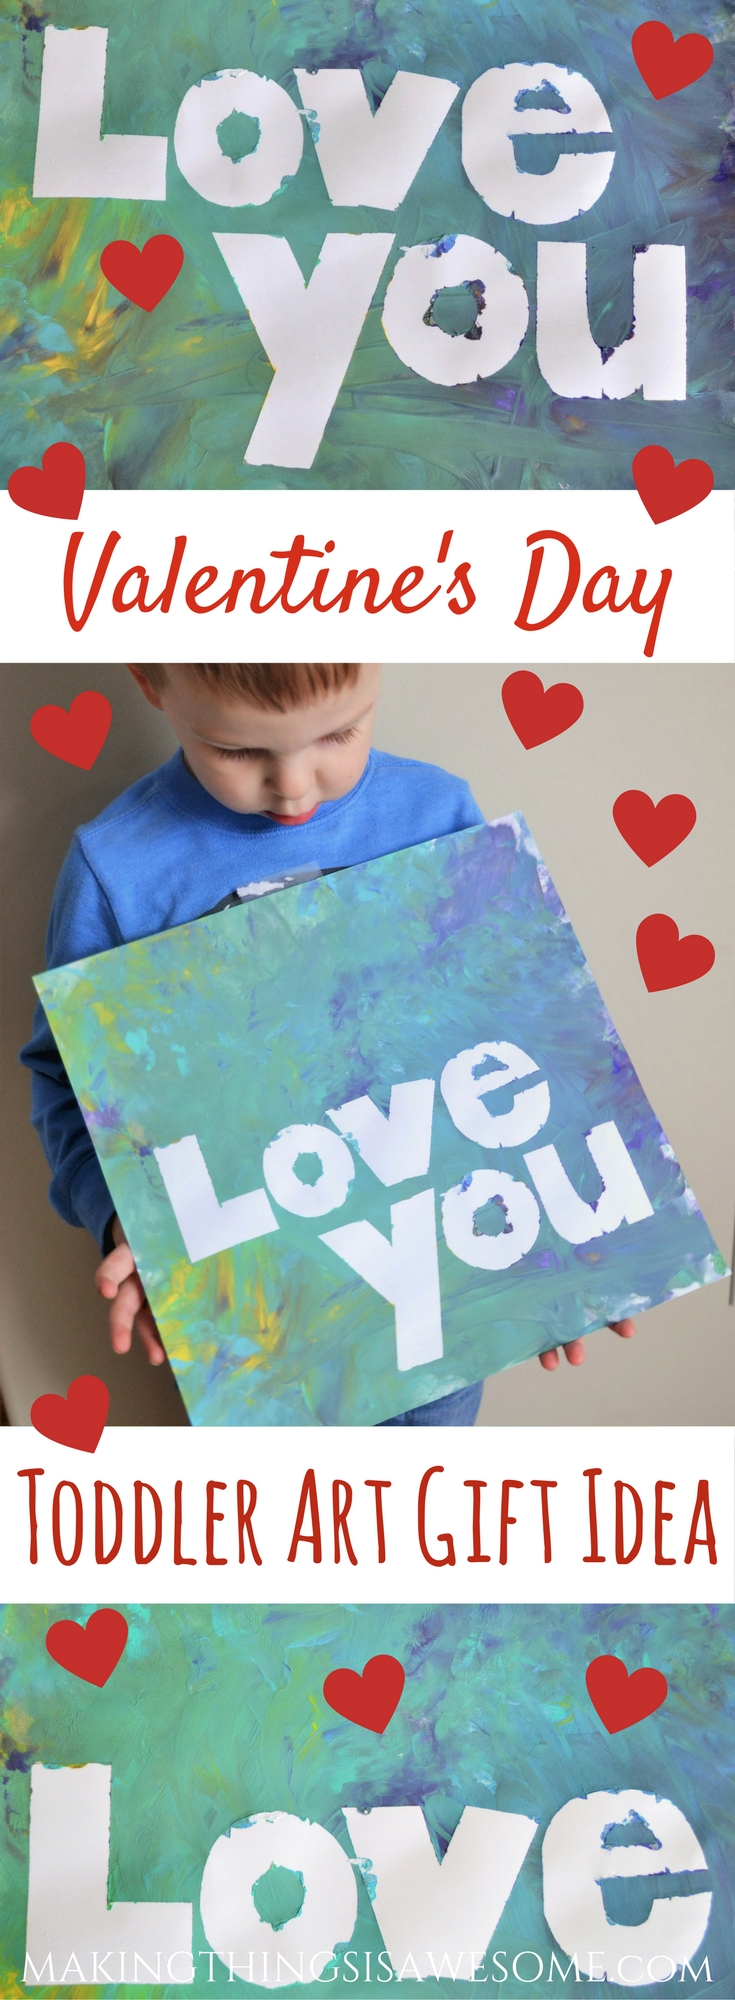 Toddler Aft Gift Idea - For Valentine's day - pin